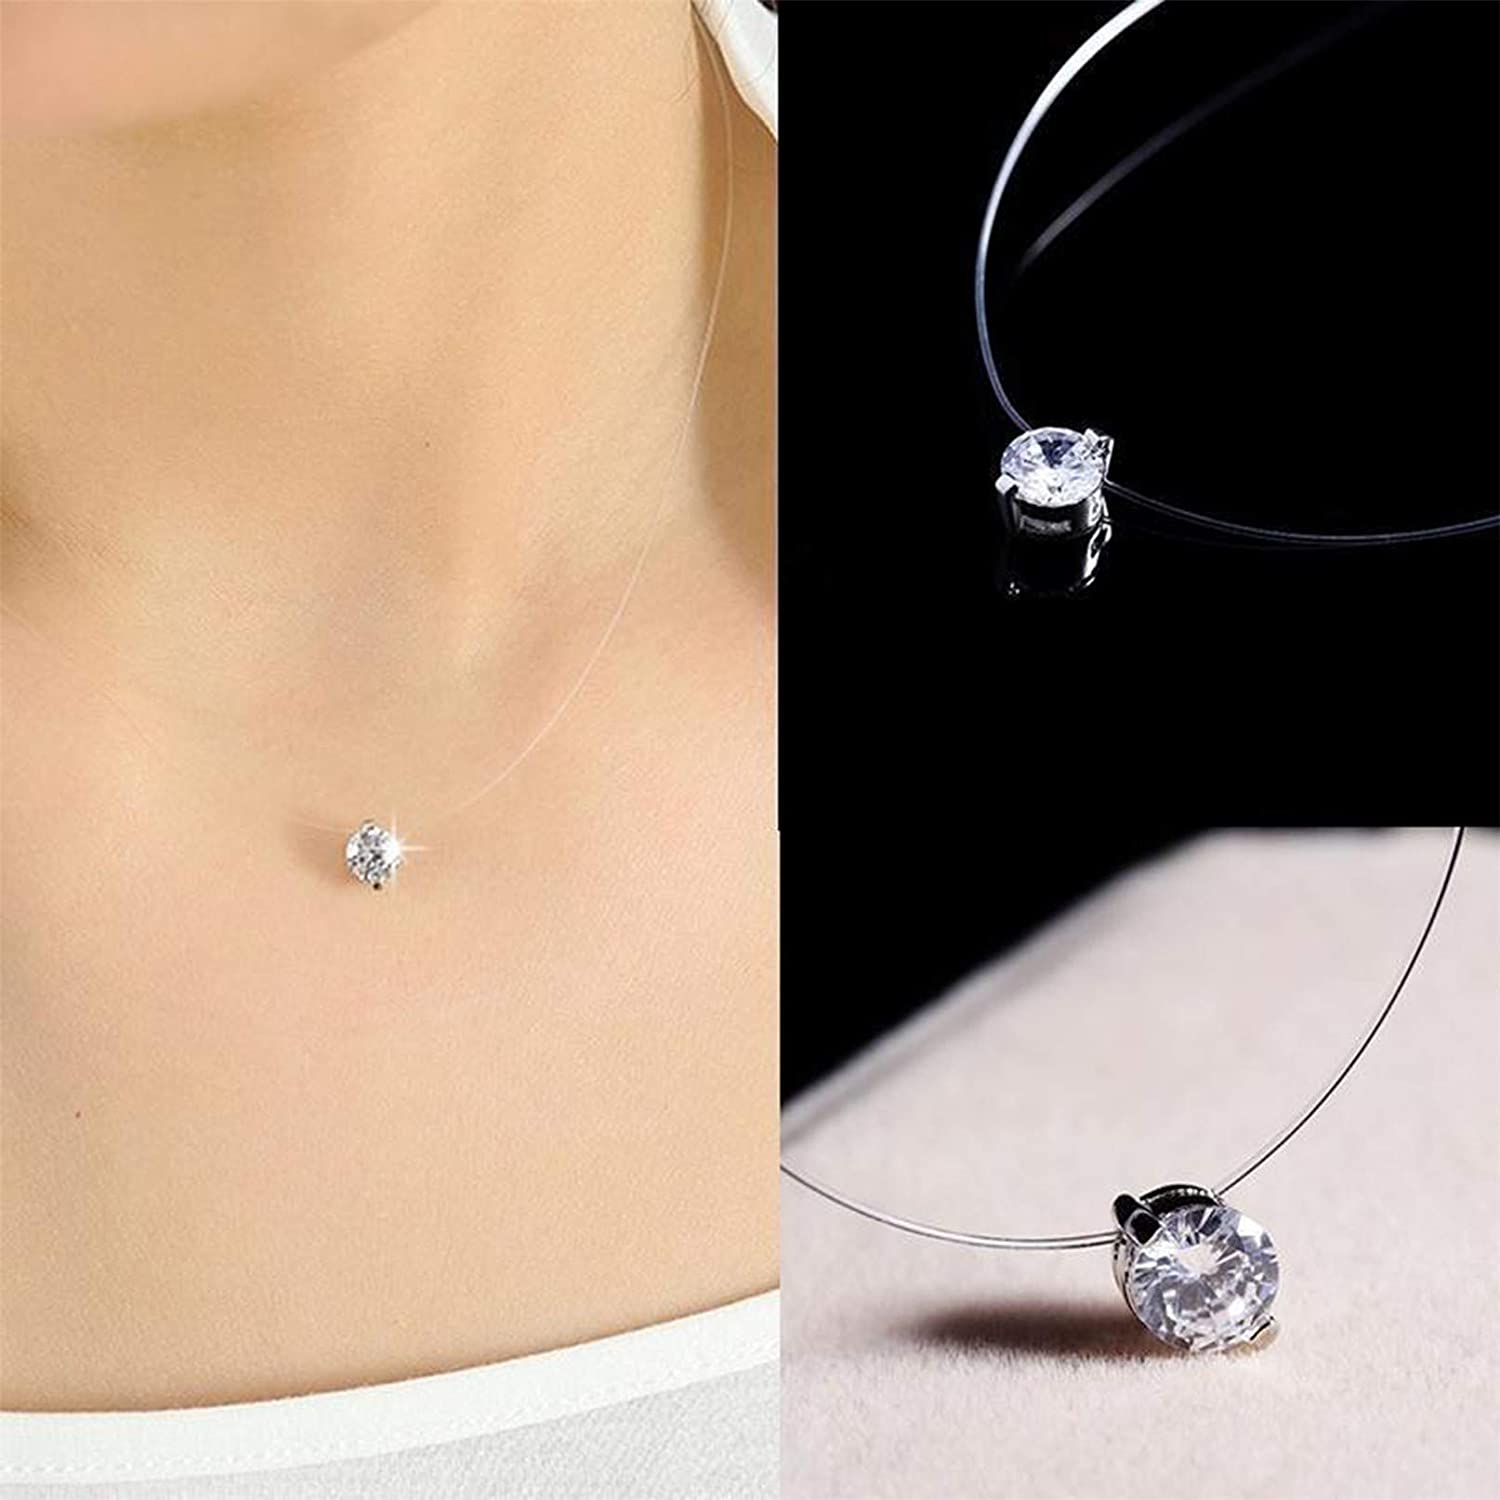 ZXDDD Multi Coloured Solitaire Pendant Necklace Chain Invisible Fishing Line Rhinestone Choker Jewellery For Women Girls